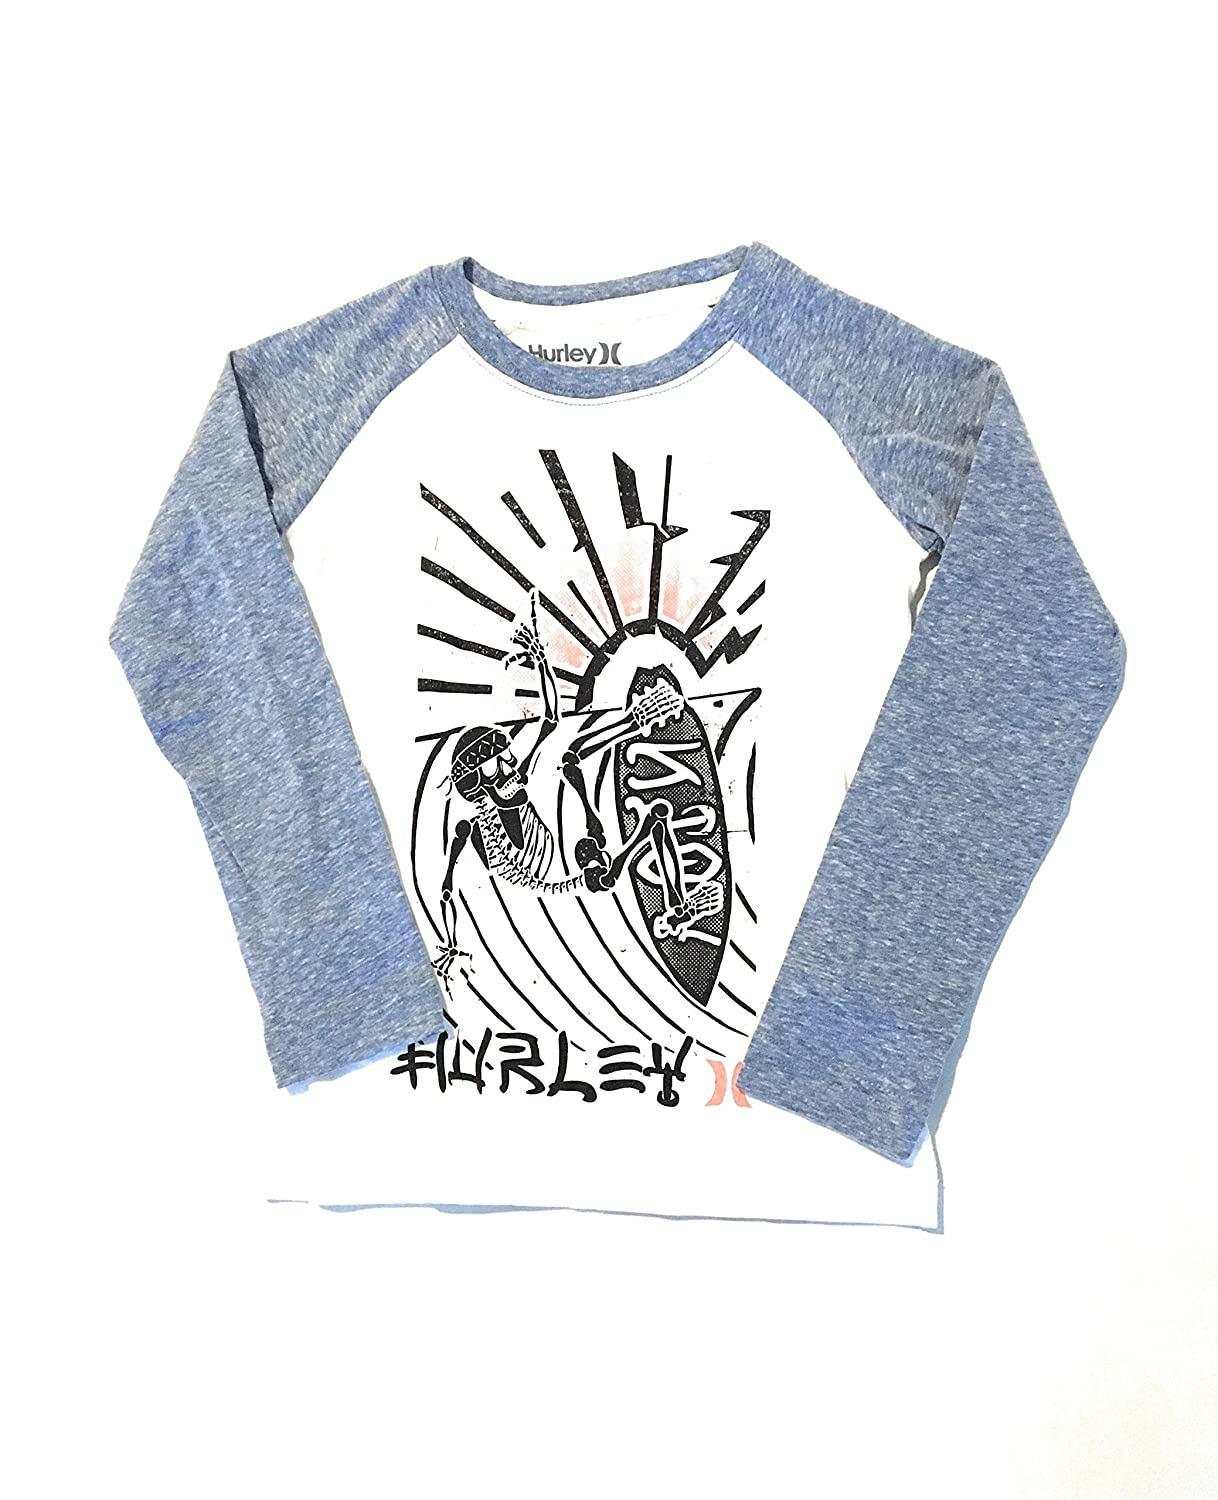 Hurley Little Boys Skeleton Surfer Raglan T-Shirt White Size 6